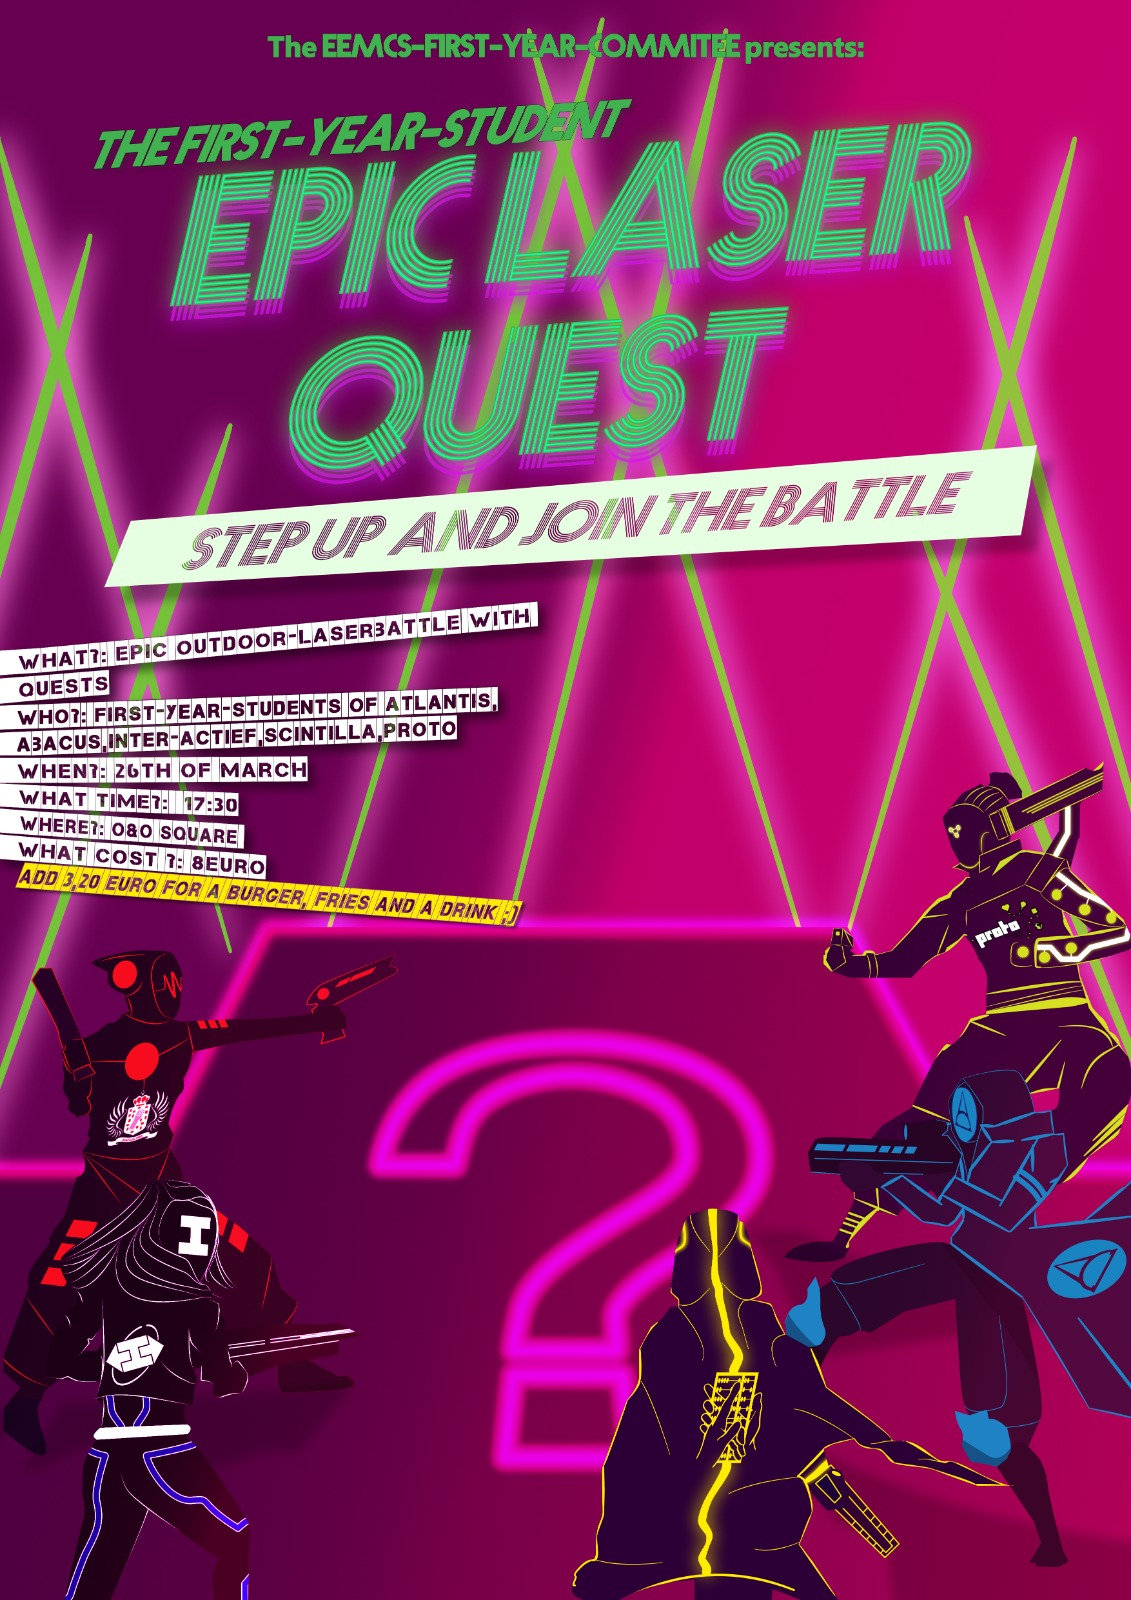 poster from Epic Lazer Quest